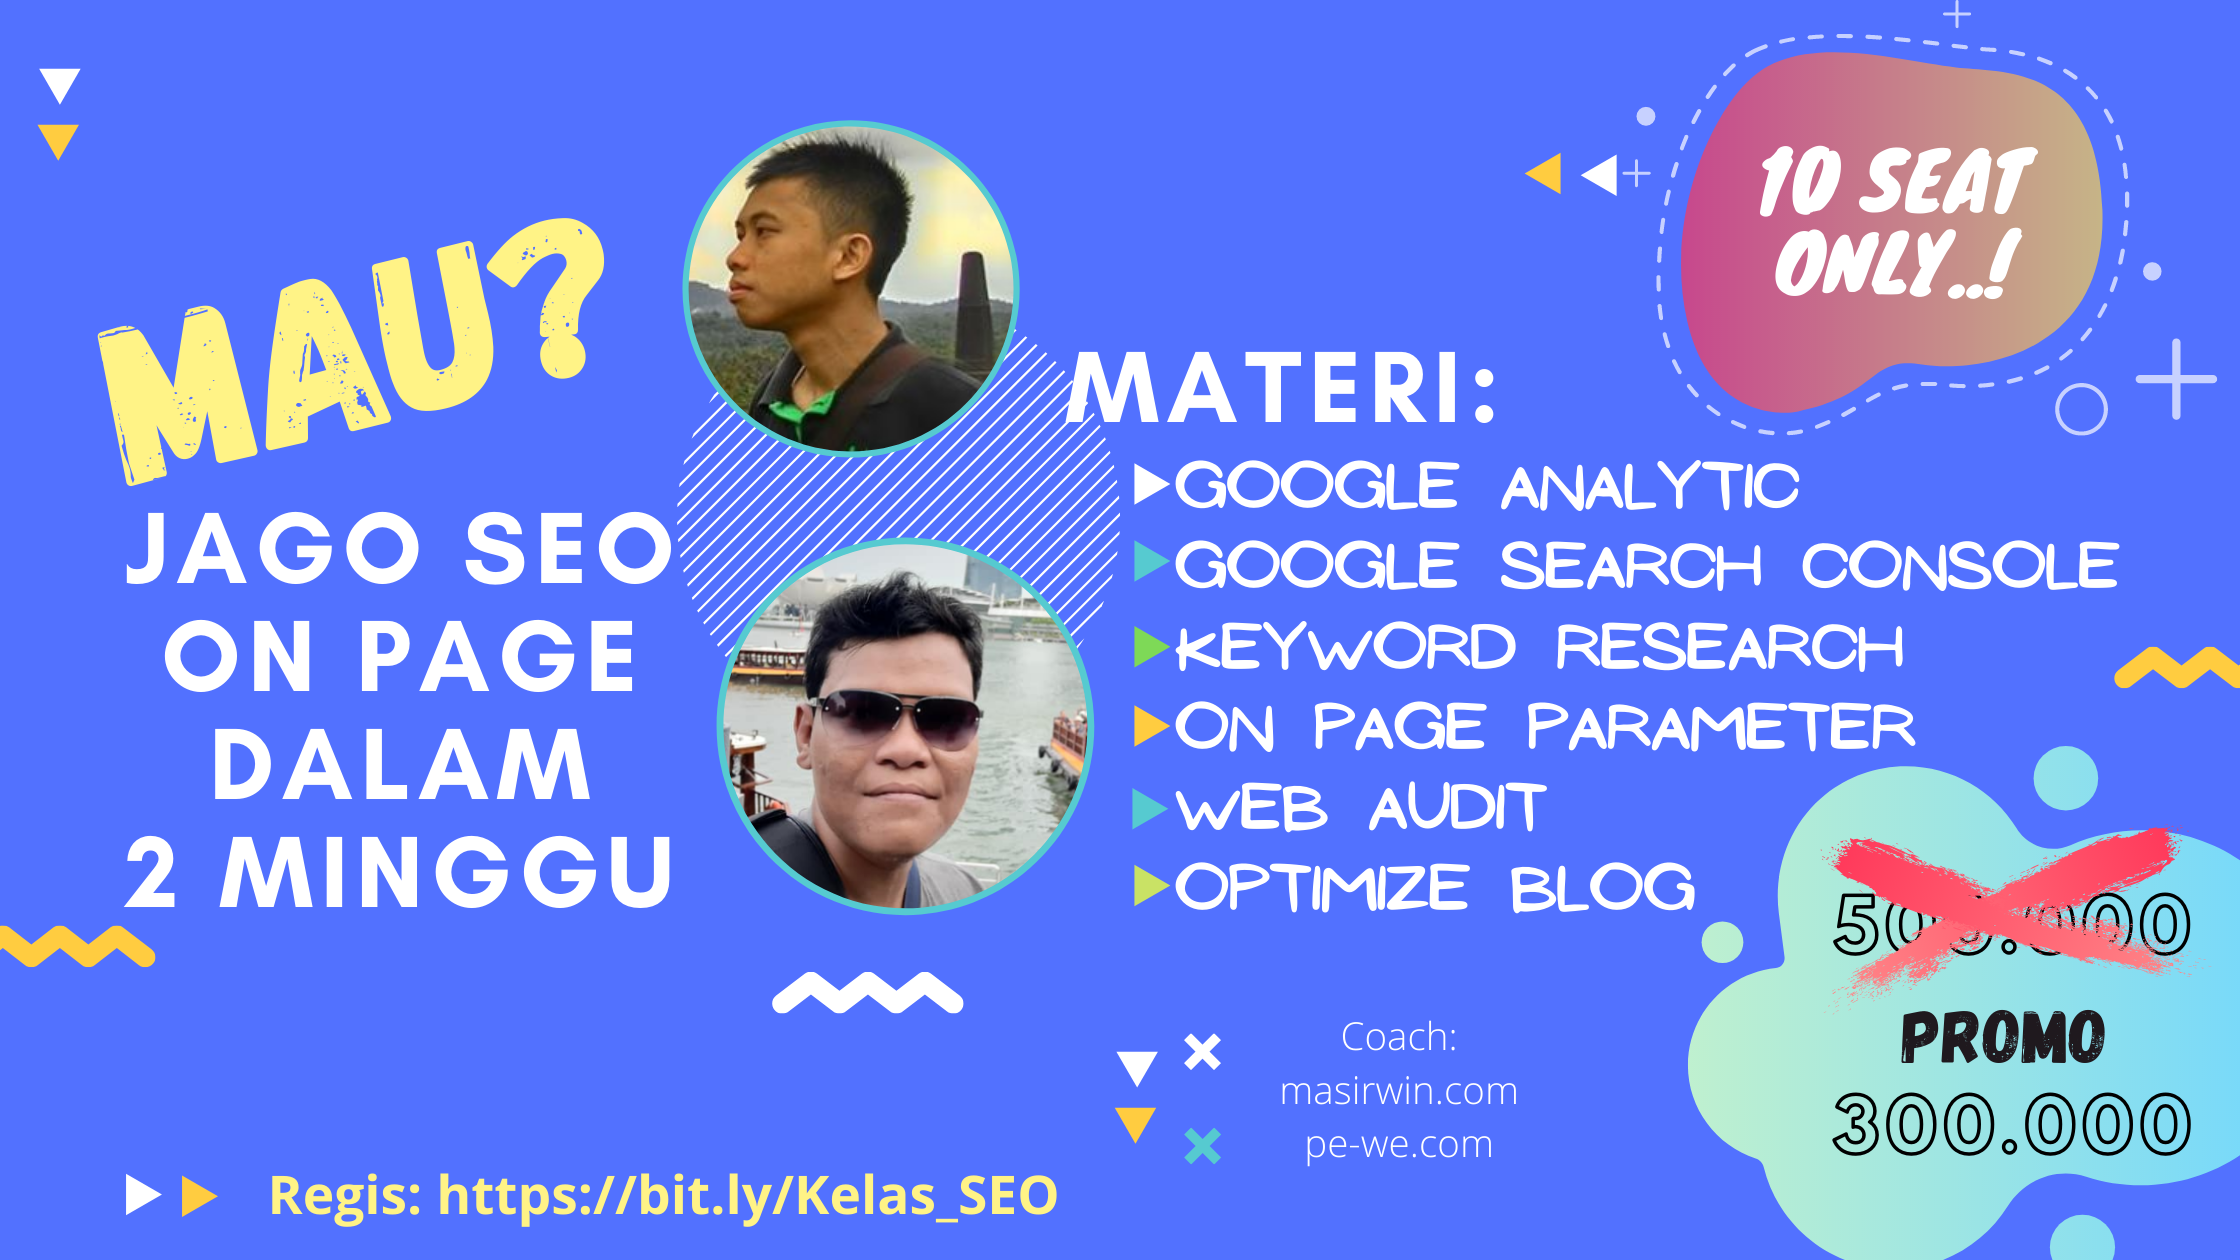 Jago SEO On page